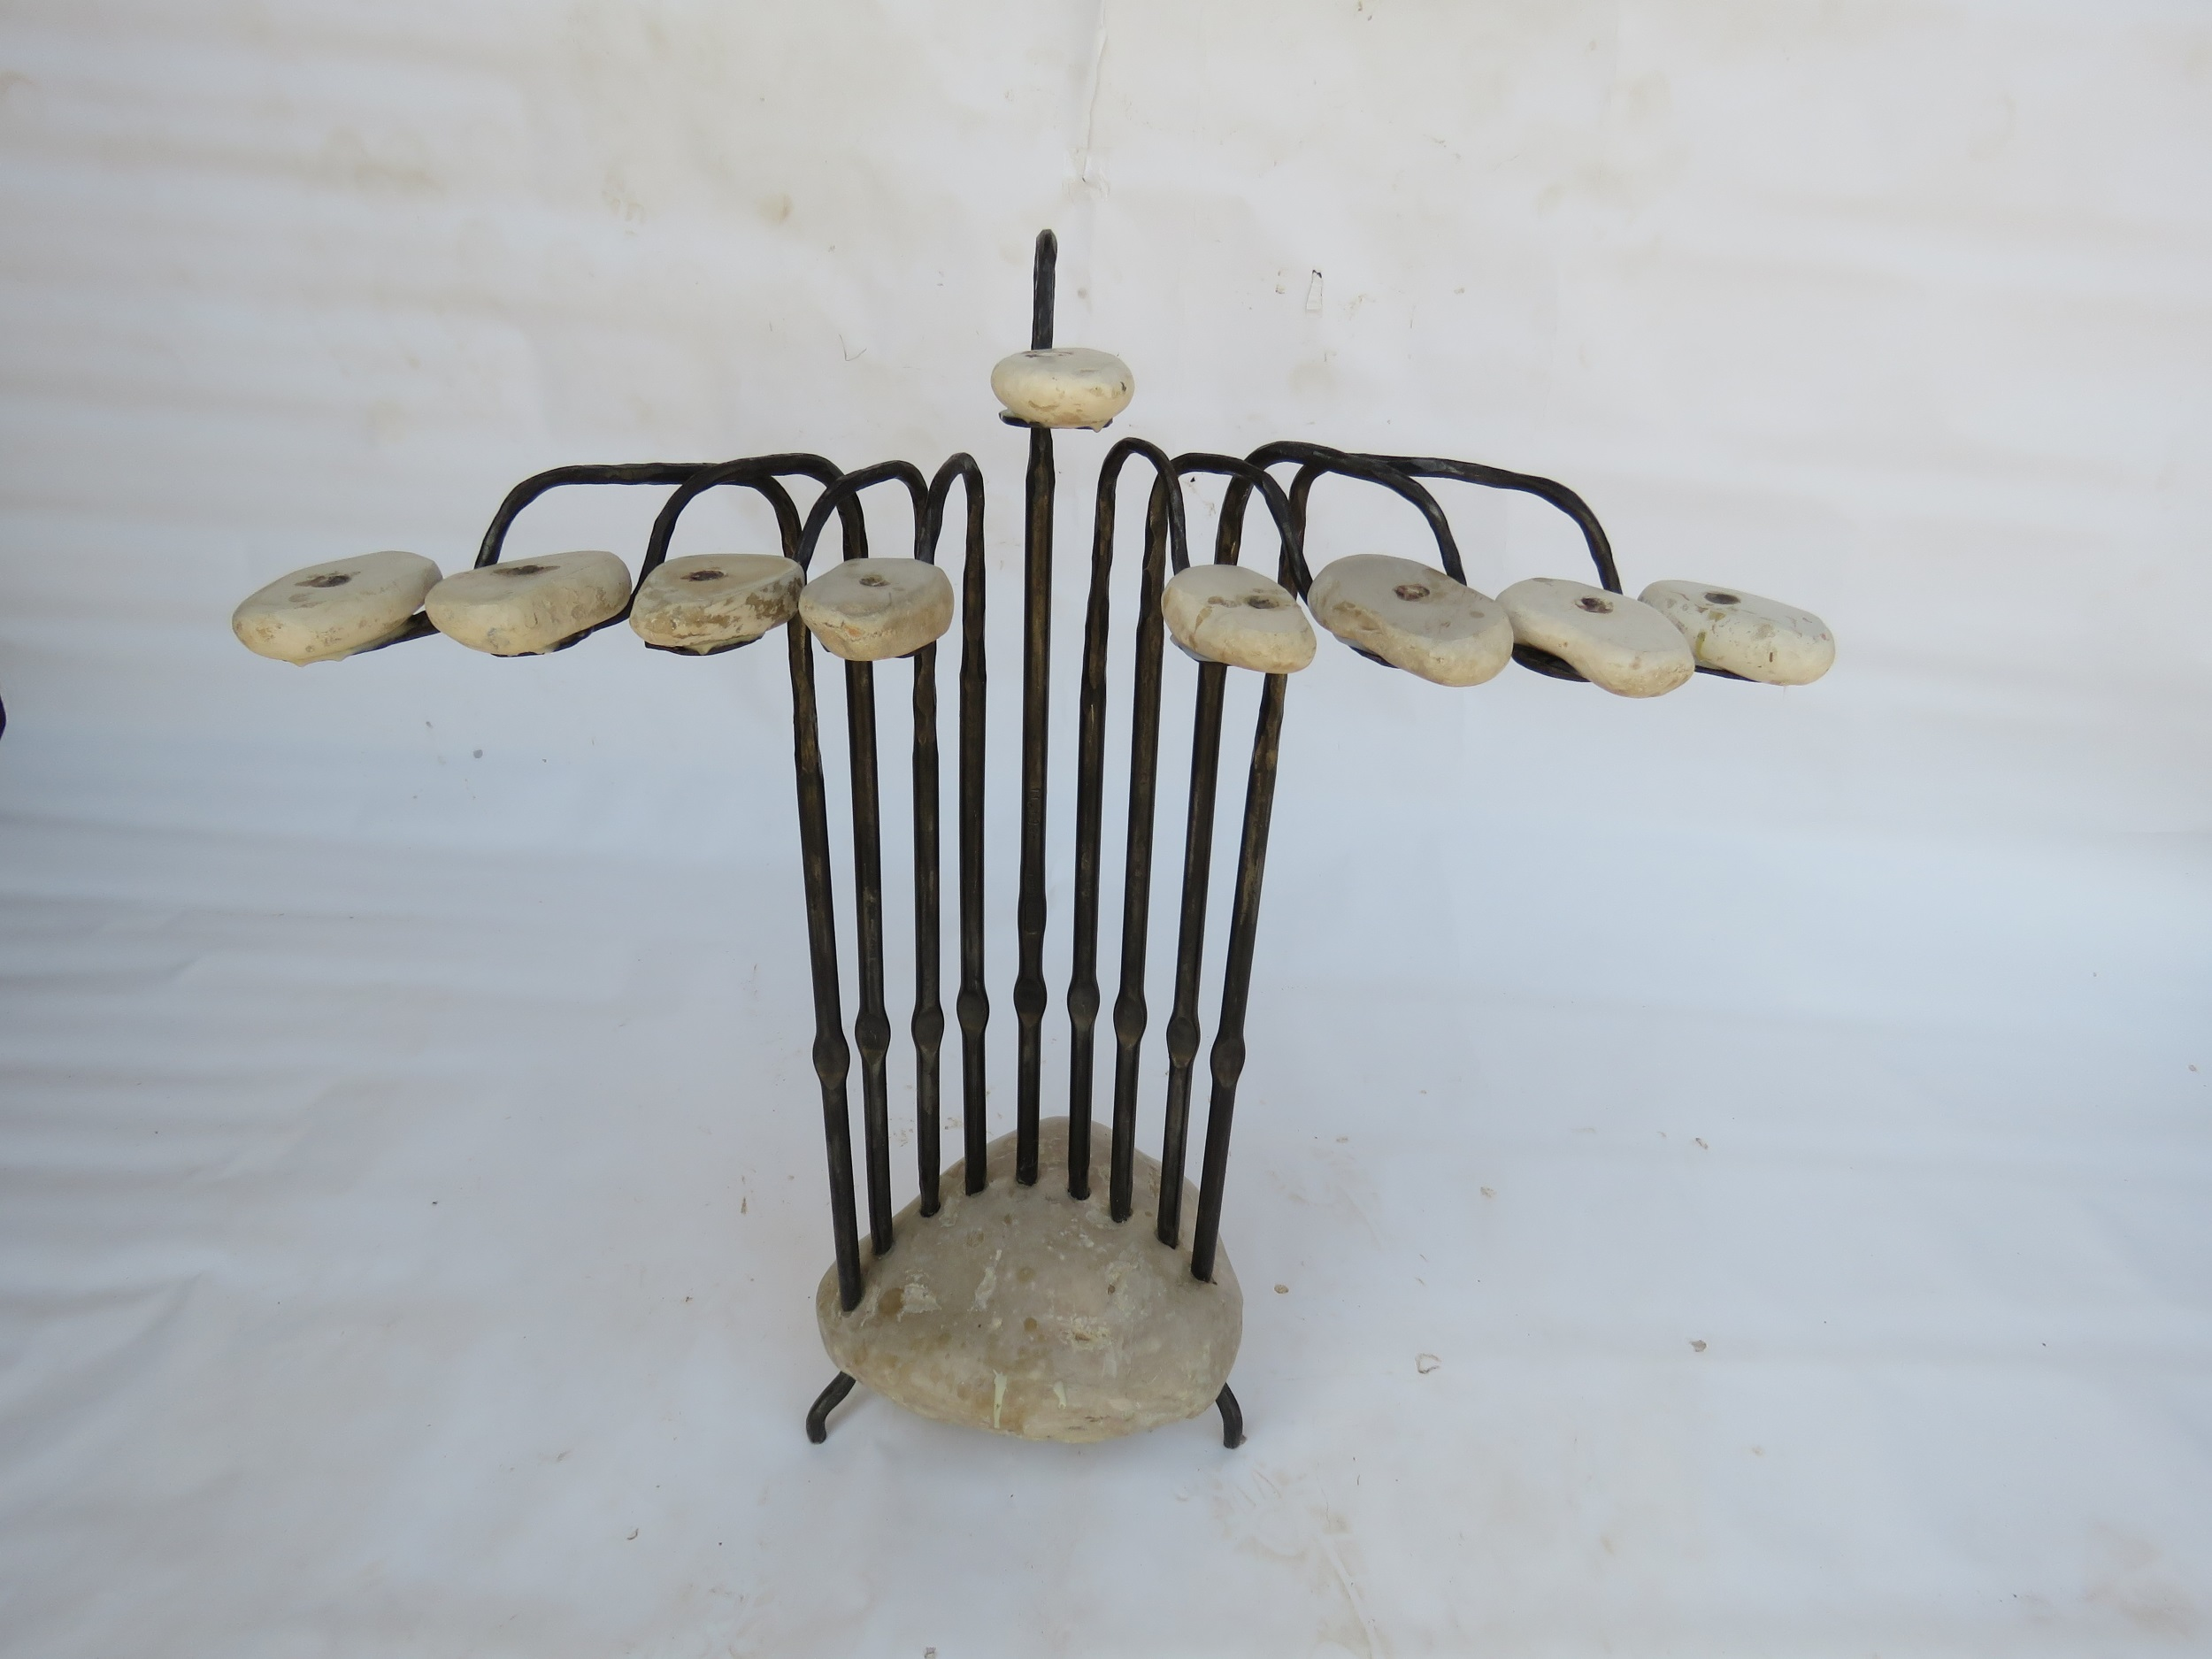 'Flamingo' - Flamingo-shaped Hanucka menorah of Iron & Stone